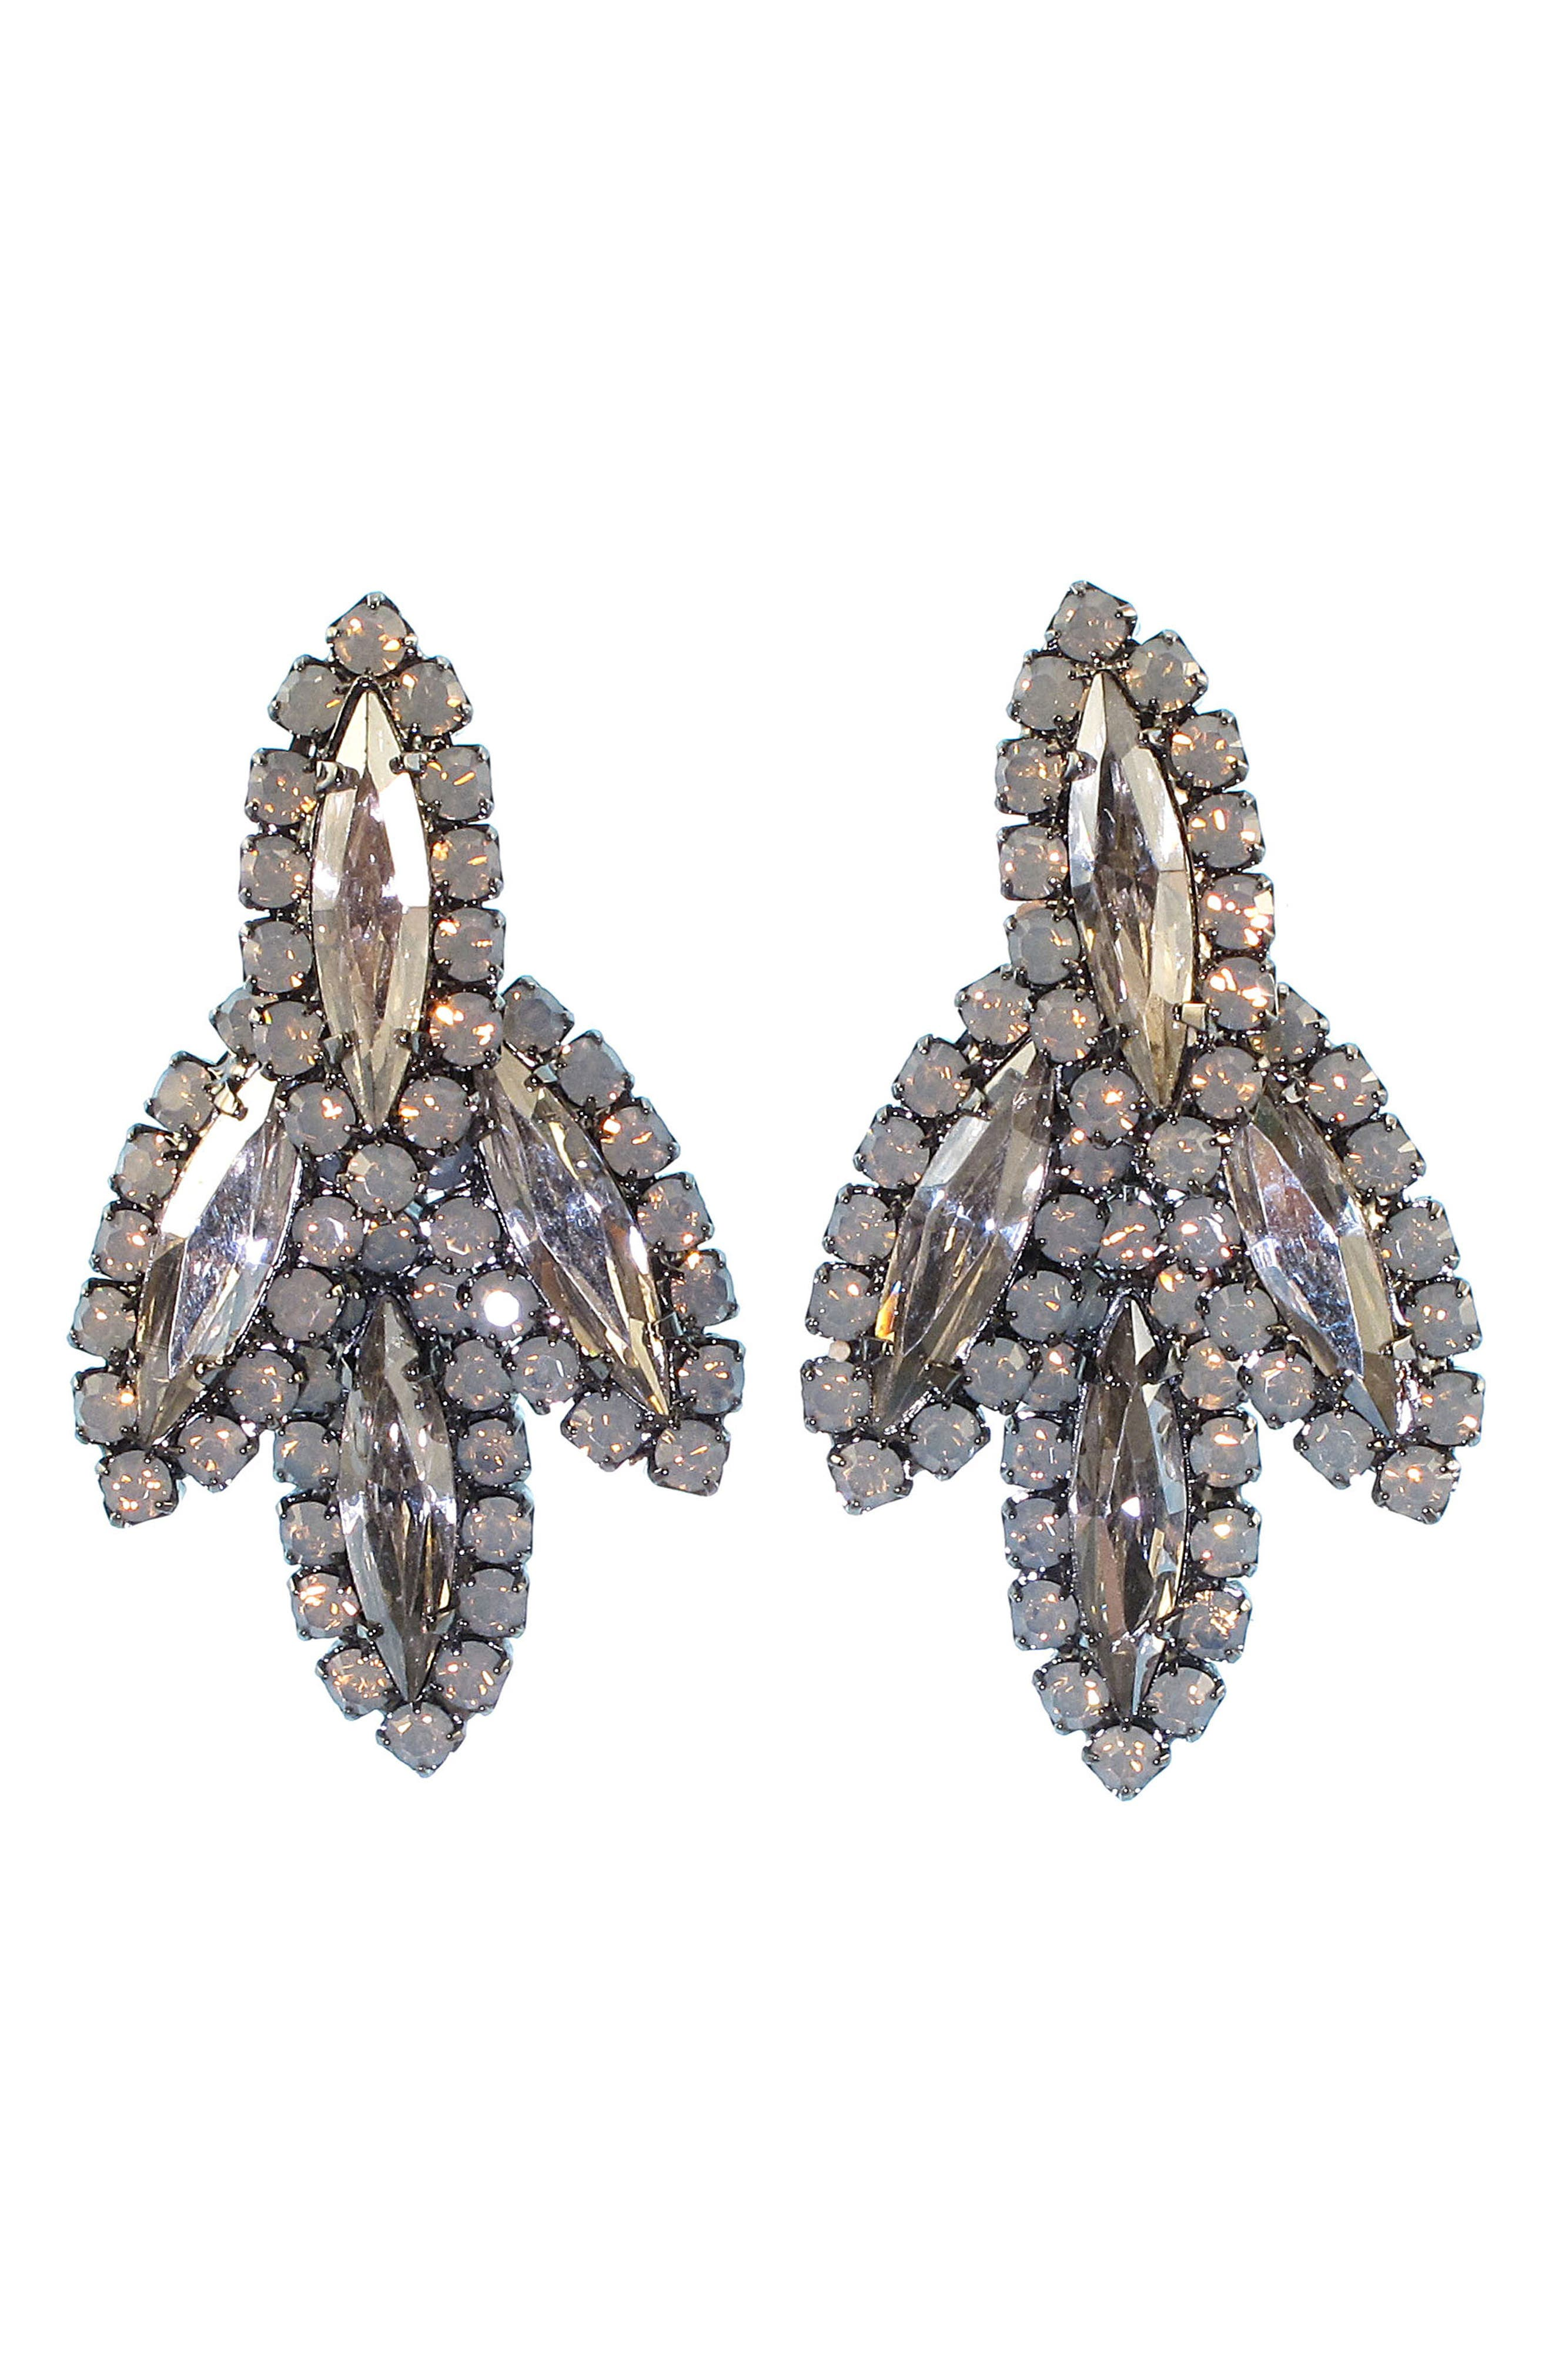 Peite Becall Crystal Drop Earrings,                             Main thumbnail 1, color,                             040